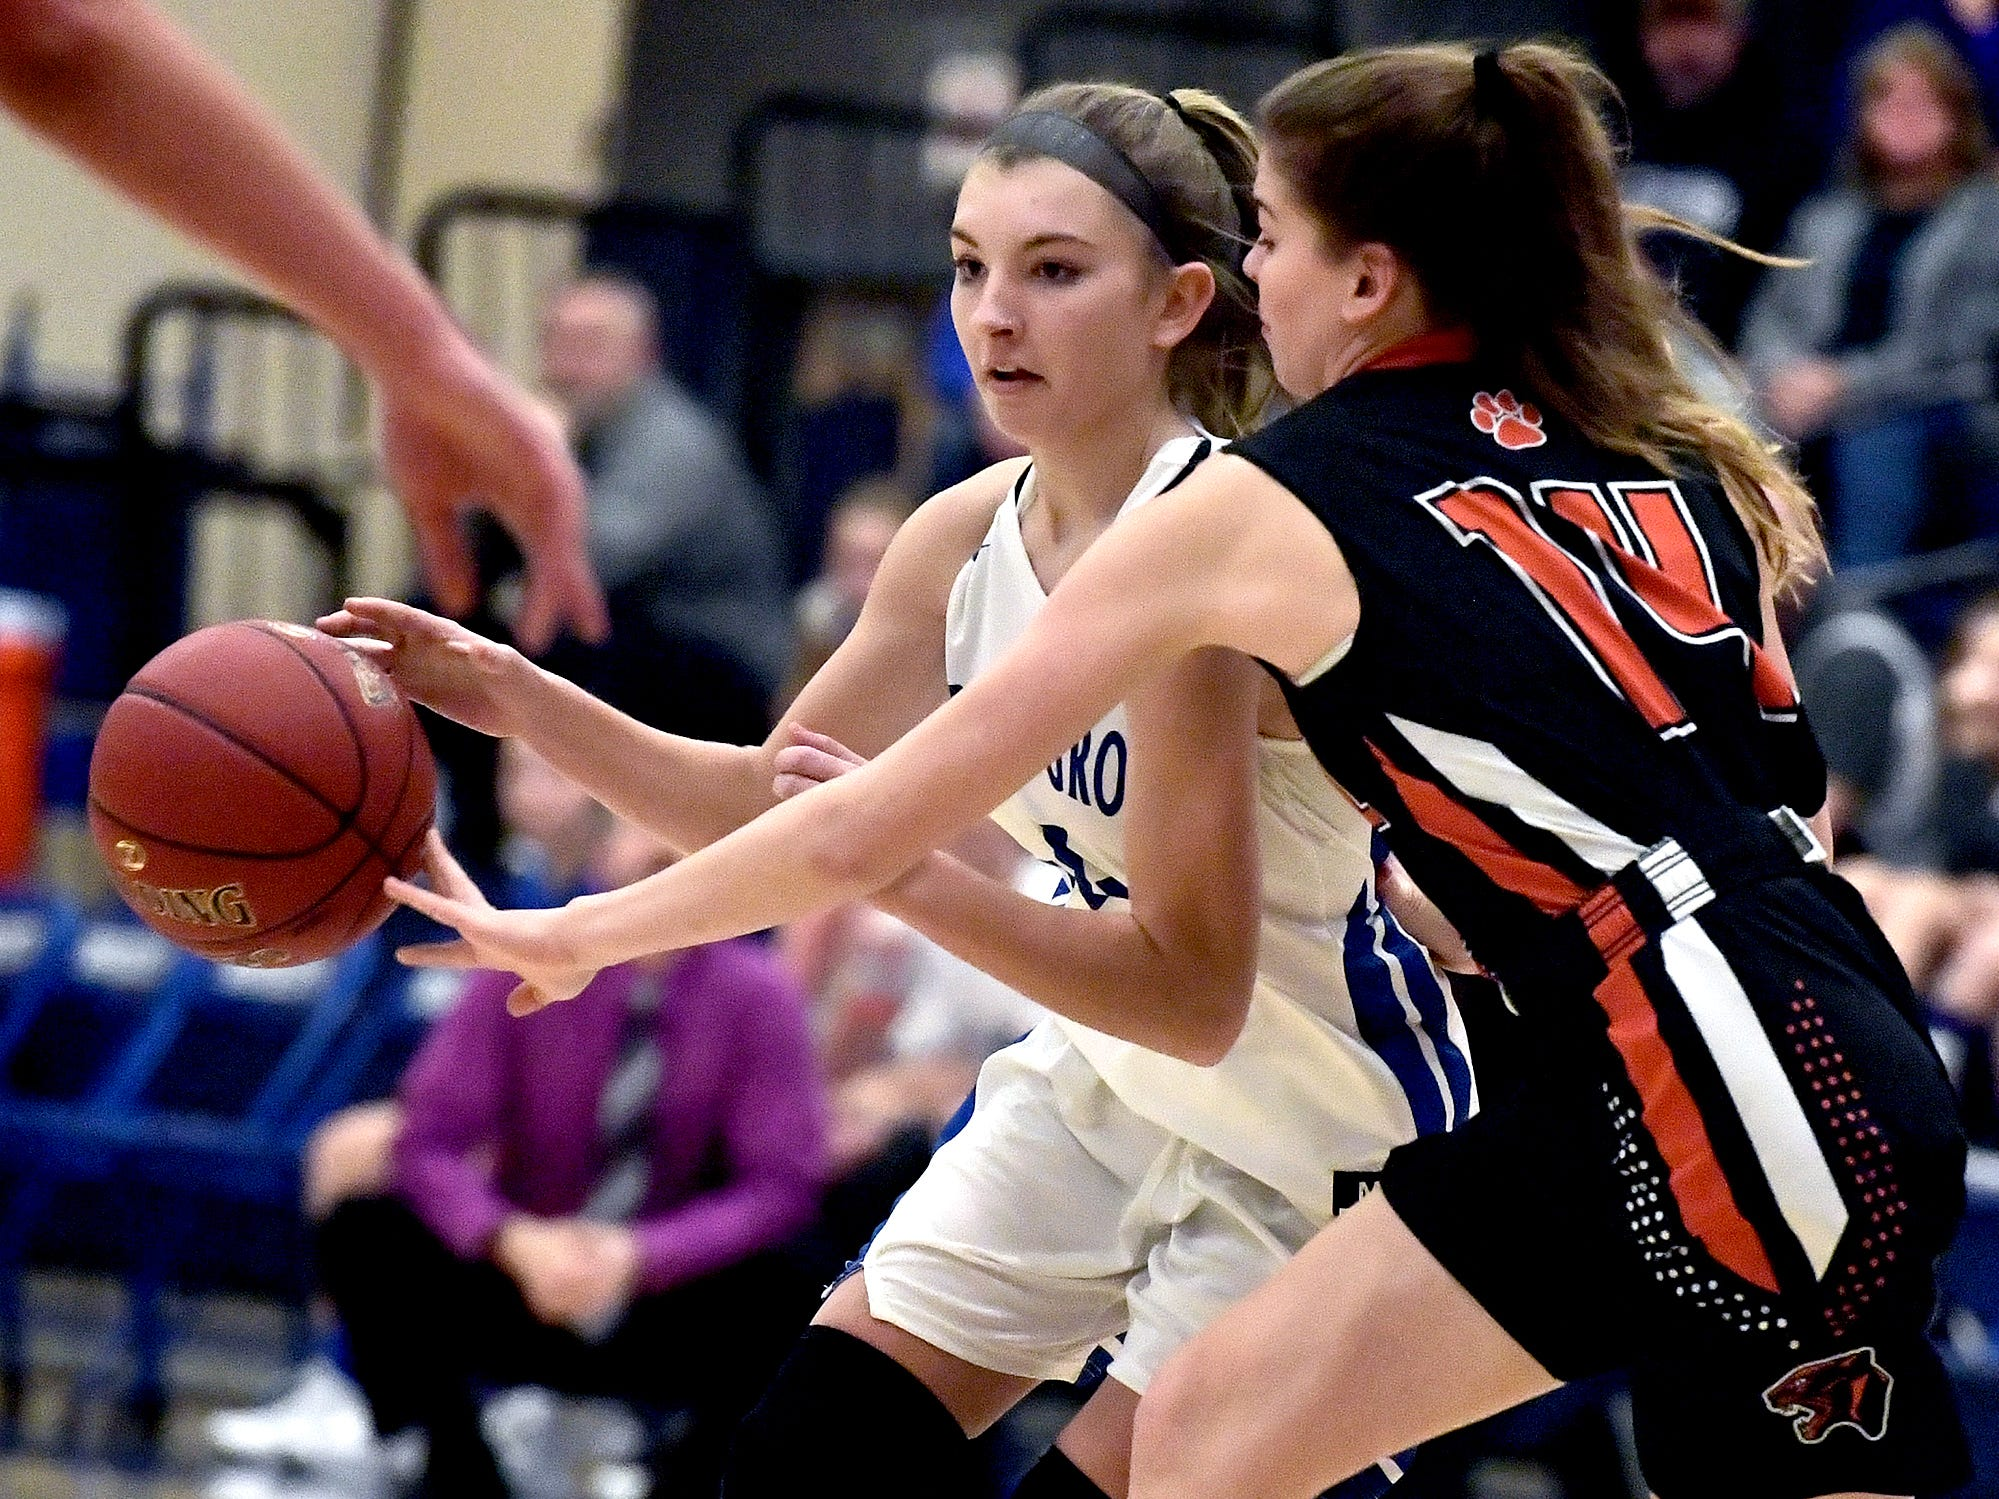 Spring Grove's Addyson Wagman drives with Central York's Zada Stockbower defending during basketball action at Spring Grove Tuesday, Jan. 8, 2019. Bill Kalina photo